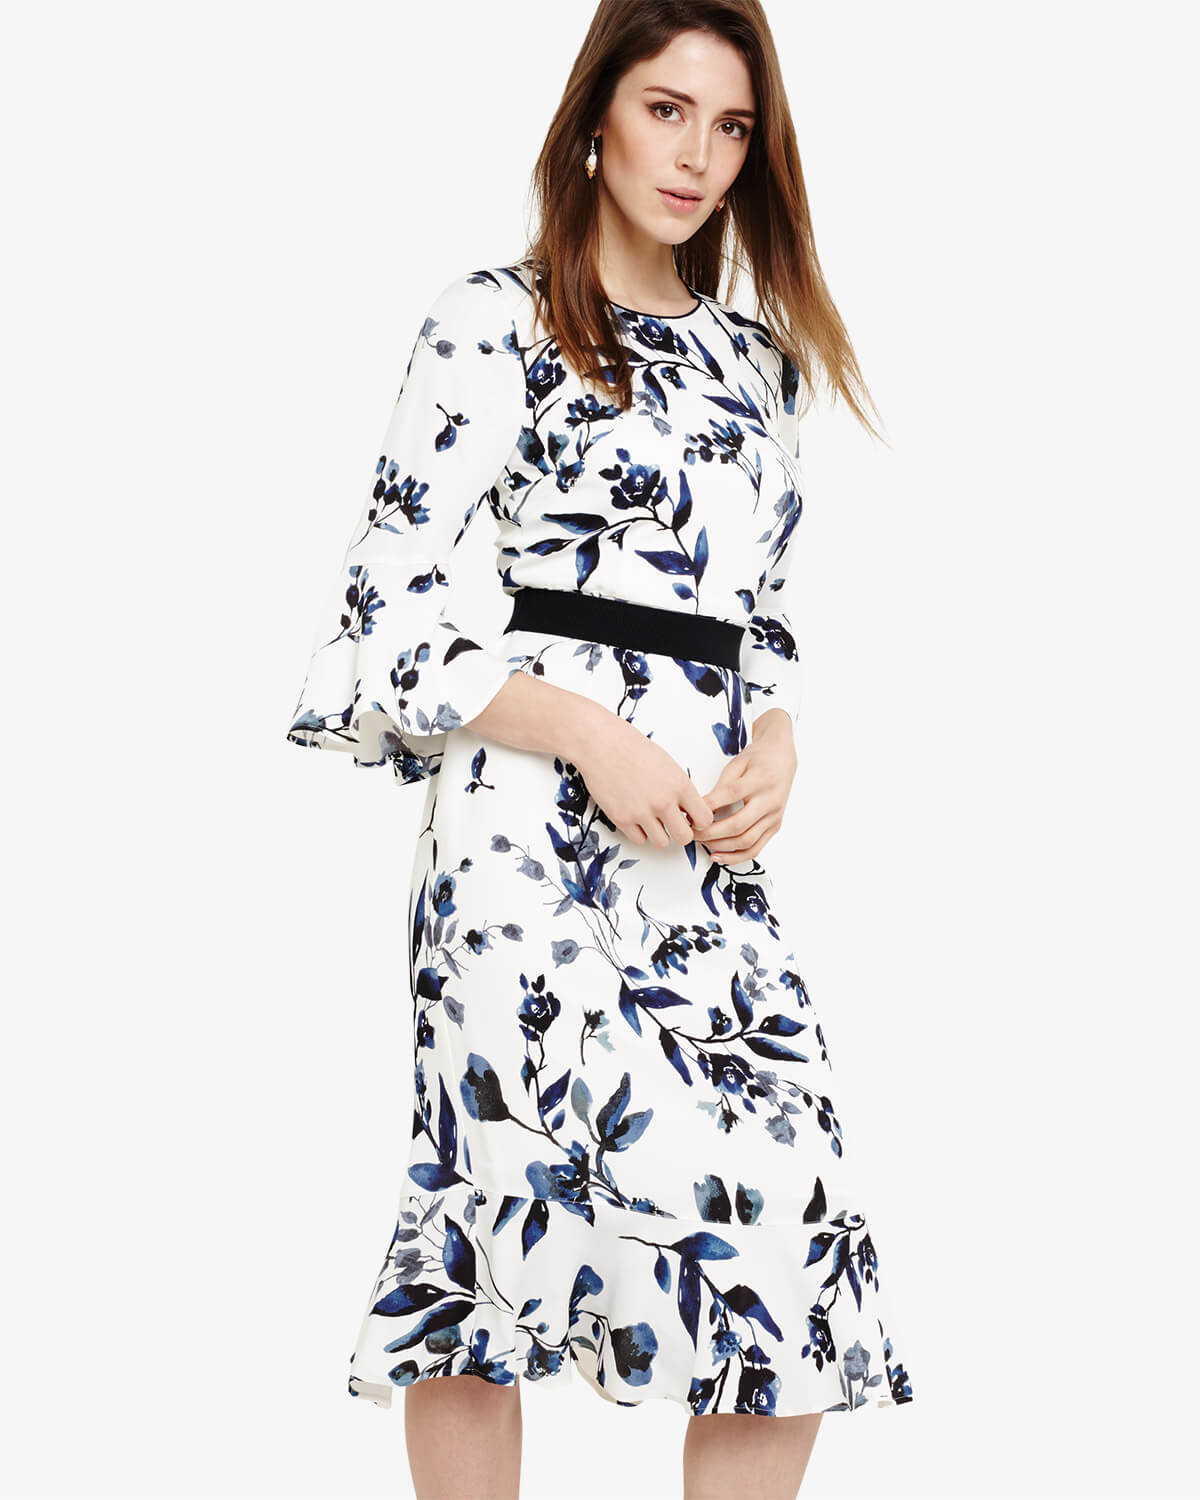 Phase Eight April Floral Twist Front Dress White Blue